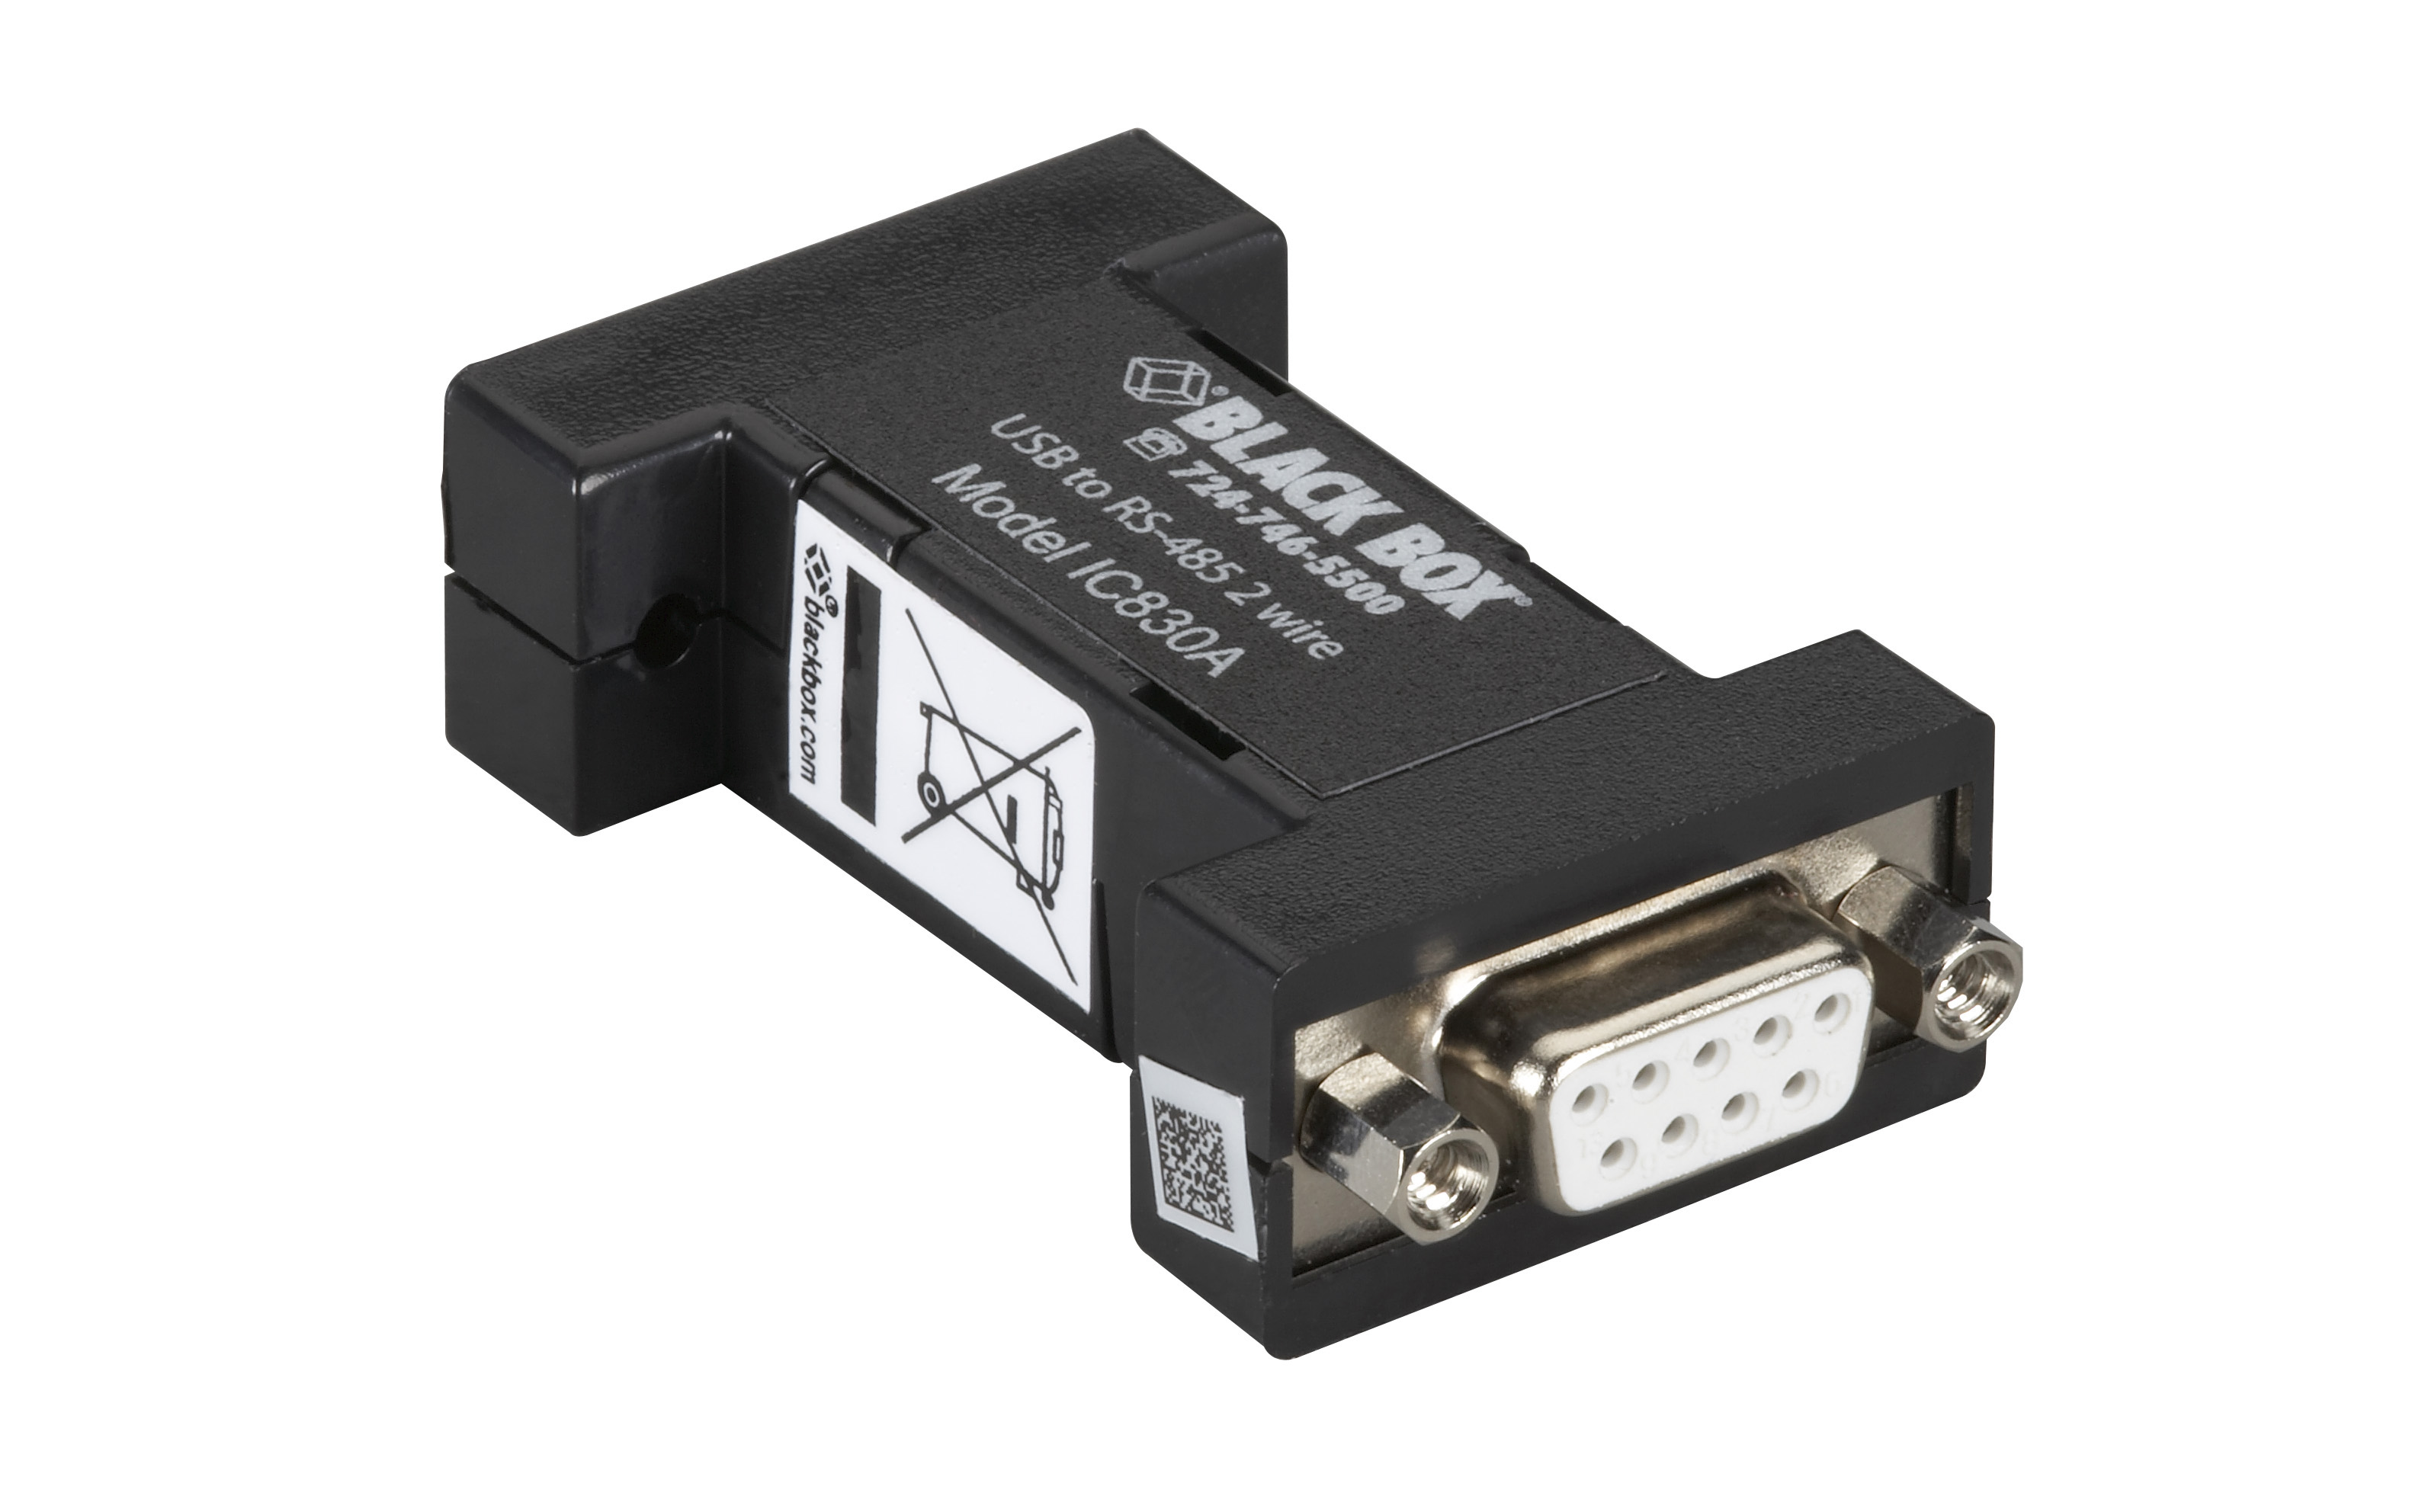 Usb 20 To Rs485 2 Wire Converter Db9 1 Port Black Box Pinout Also Power Cable Wiring Diagram In Addition Additional Product Image